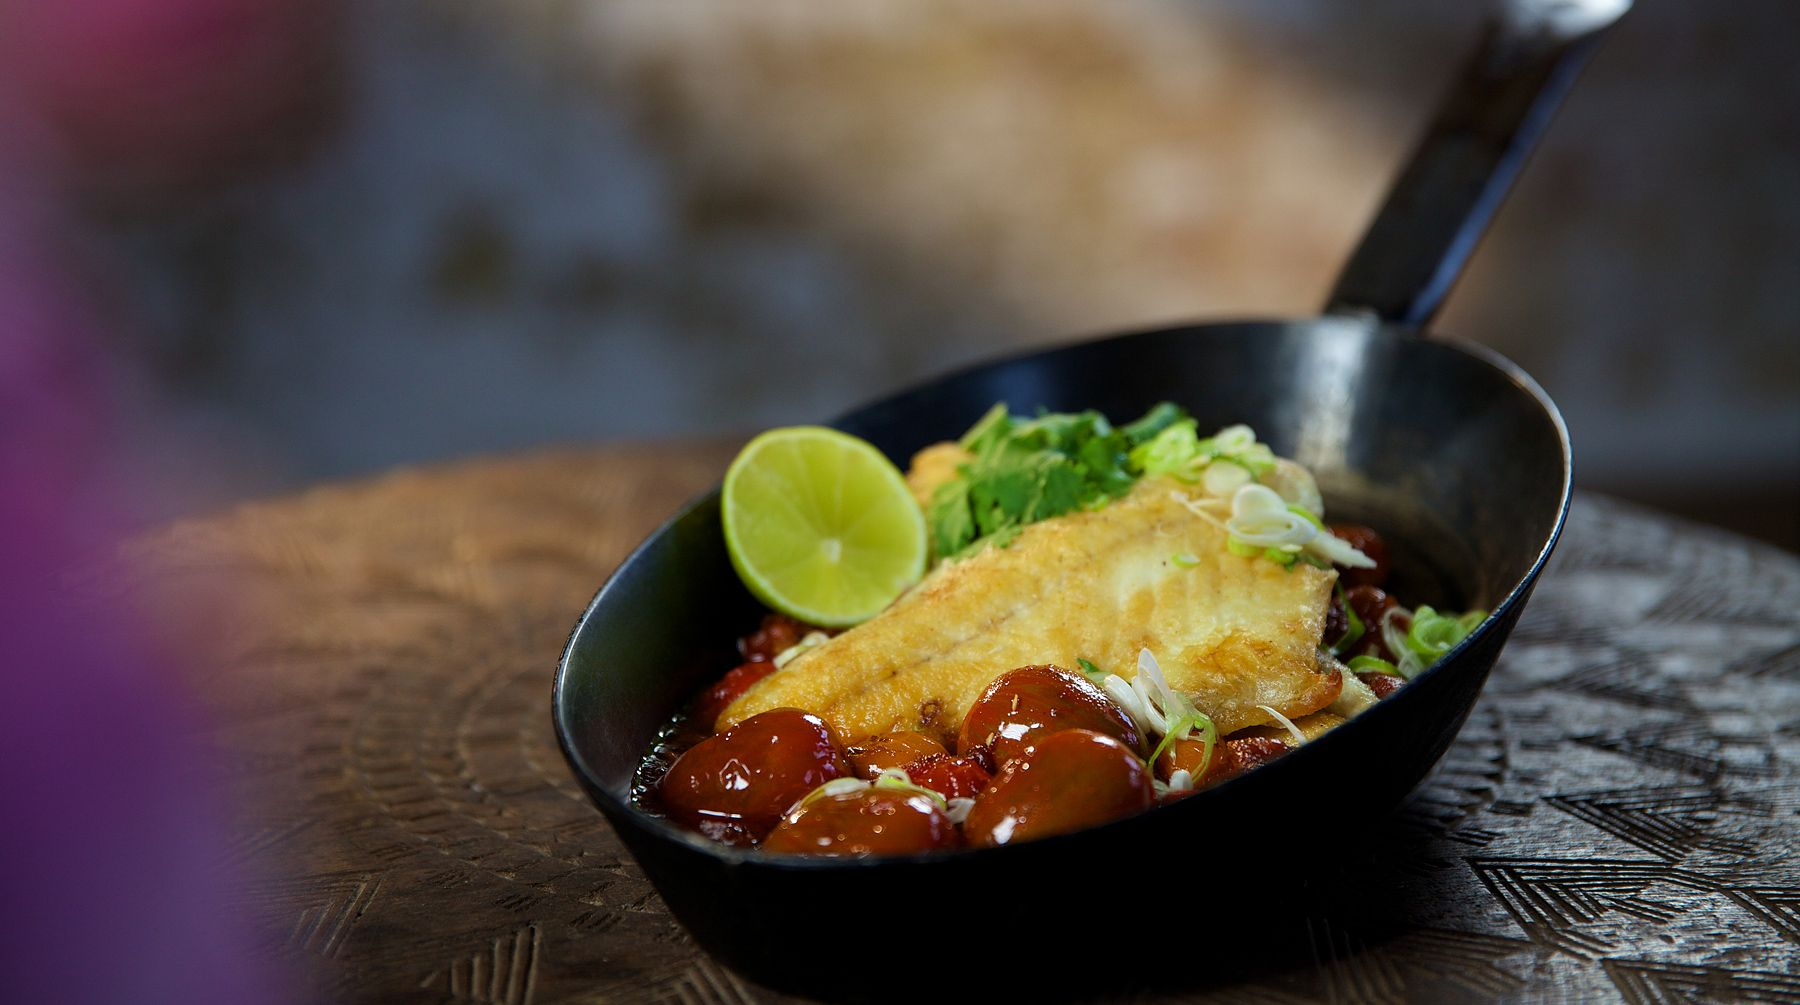 Dig into this quick and easy thai fish recipe by reza mahammad from dig into this quick and easy thai fish recipe by reza mahammad from reza spice prince thai fish recipefood channel forumfinder Gallery